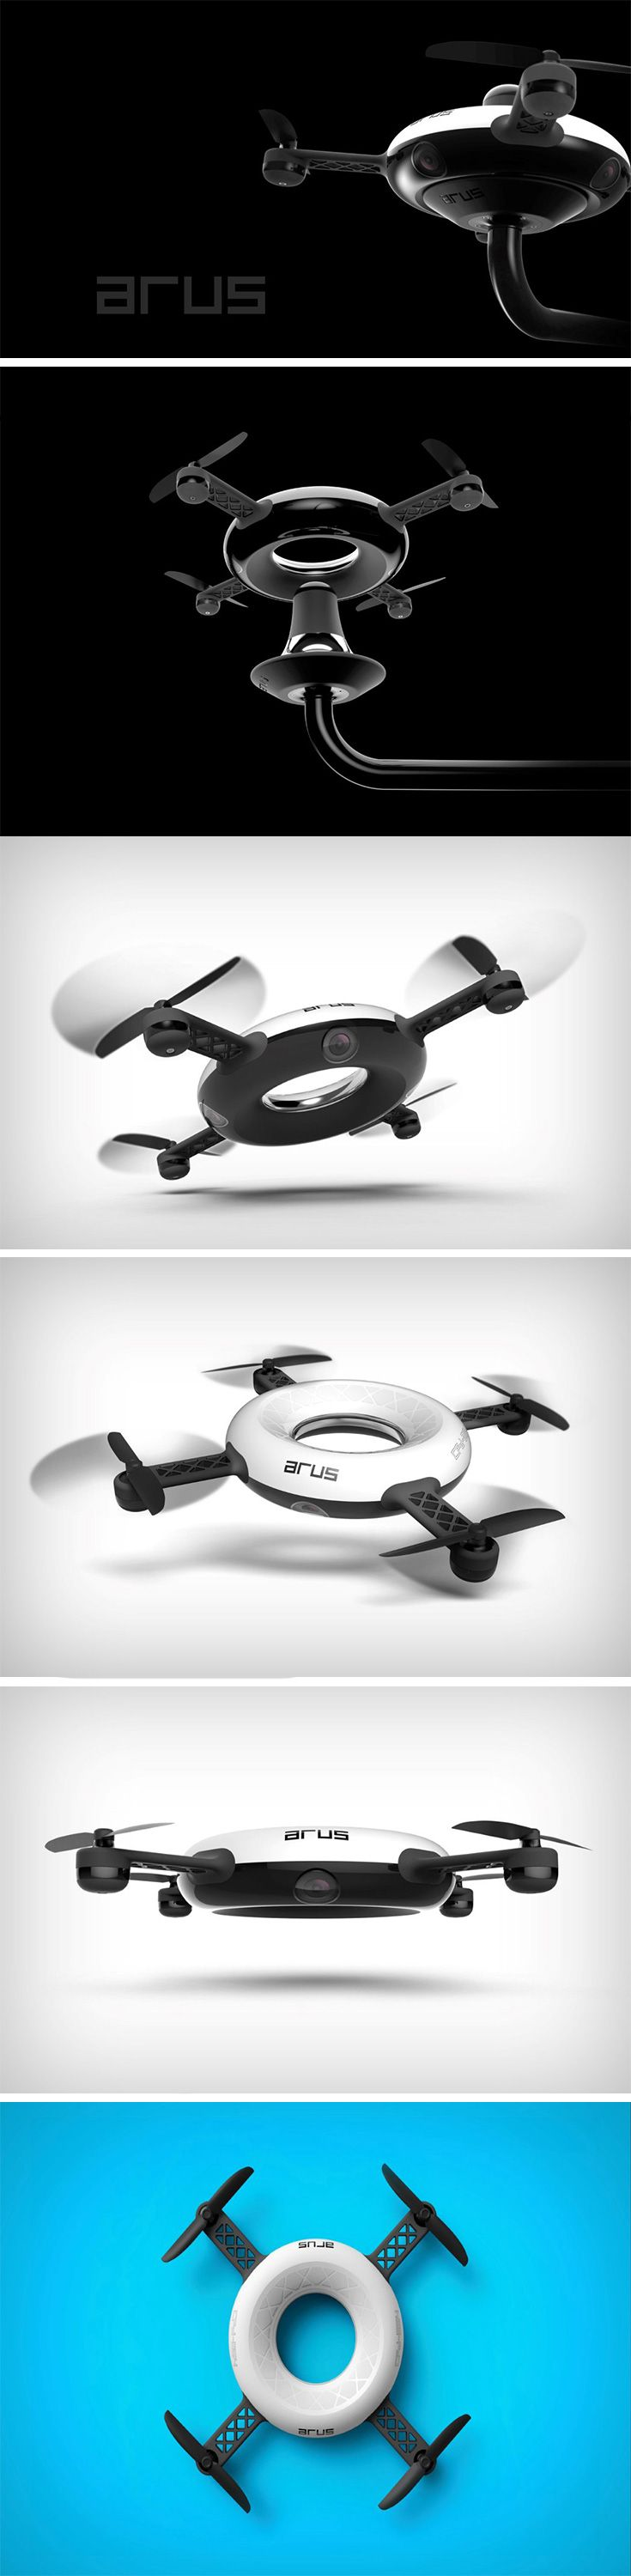 The ARUS drone is designed for release during emergency situations as a first re...